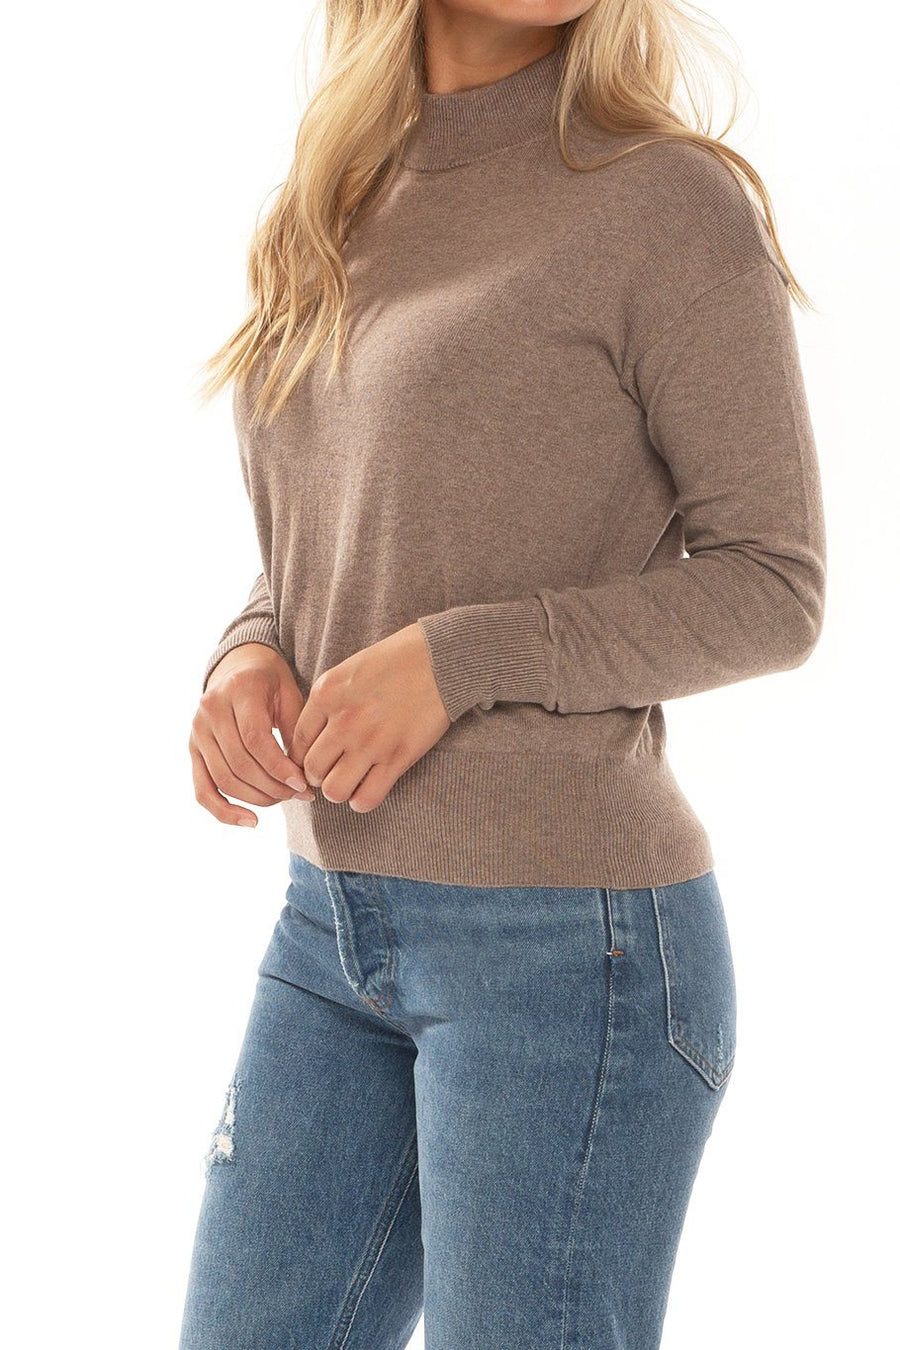 Whistler High Neck Sweater - Tan - Shore